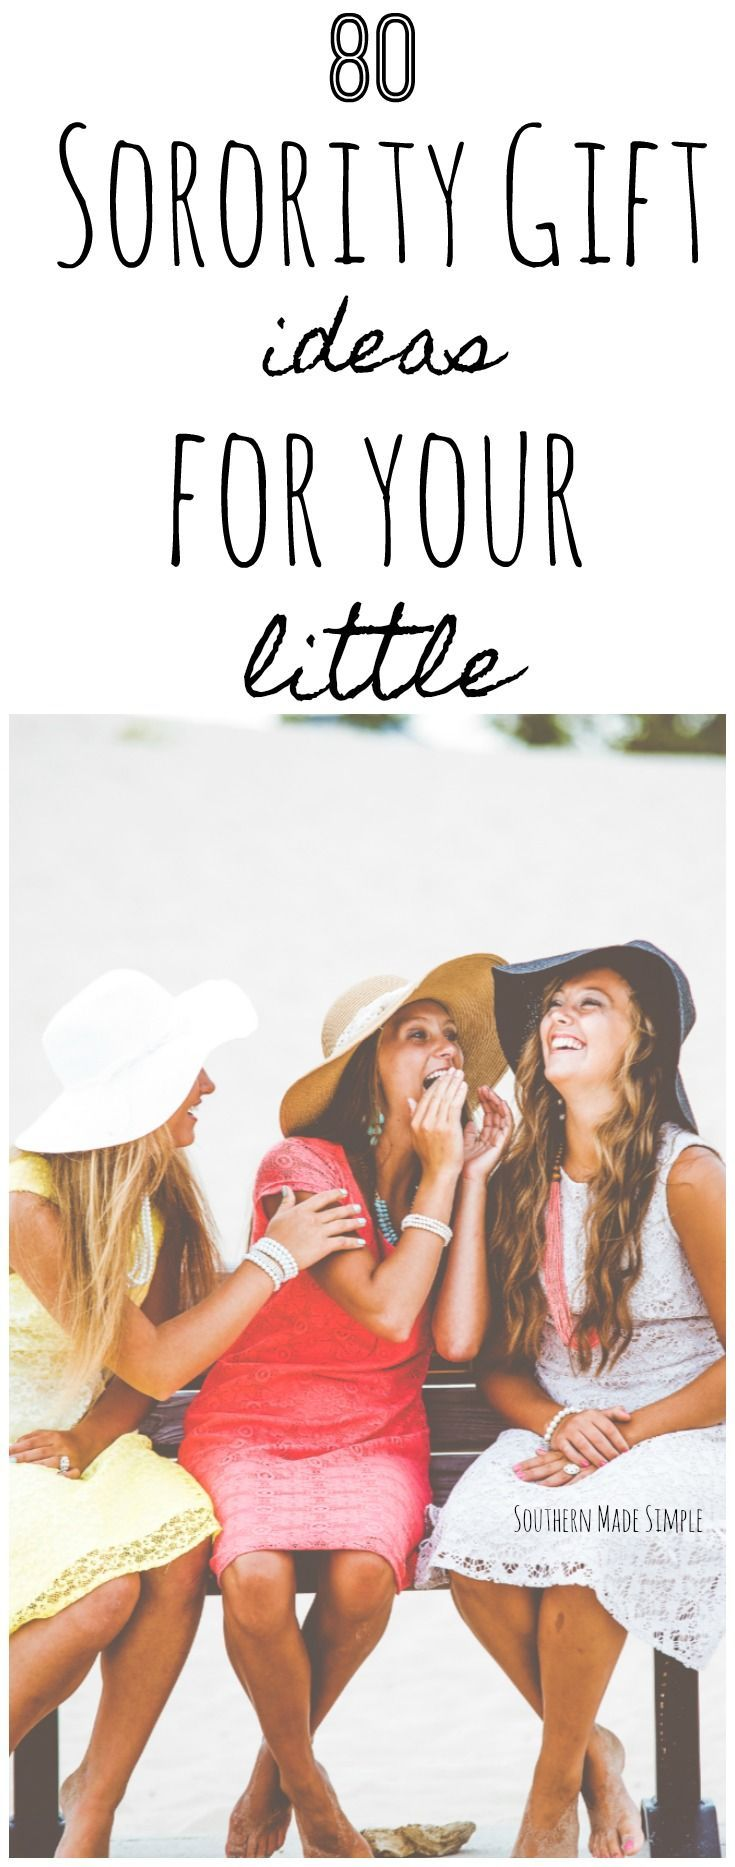 Looking for fun and creative gift ideas to spoil your sweet little with? I've got 80 different ideas that will make your big/little reveal the best ever!